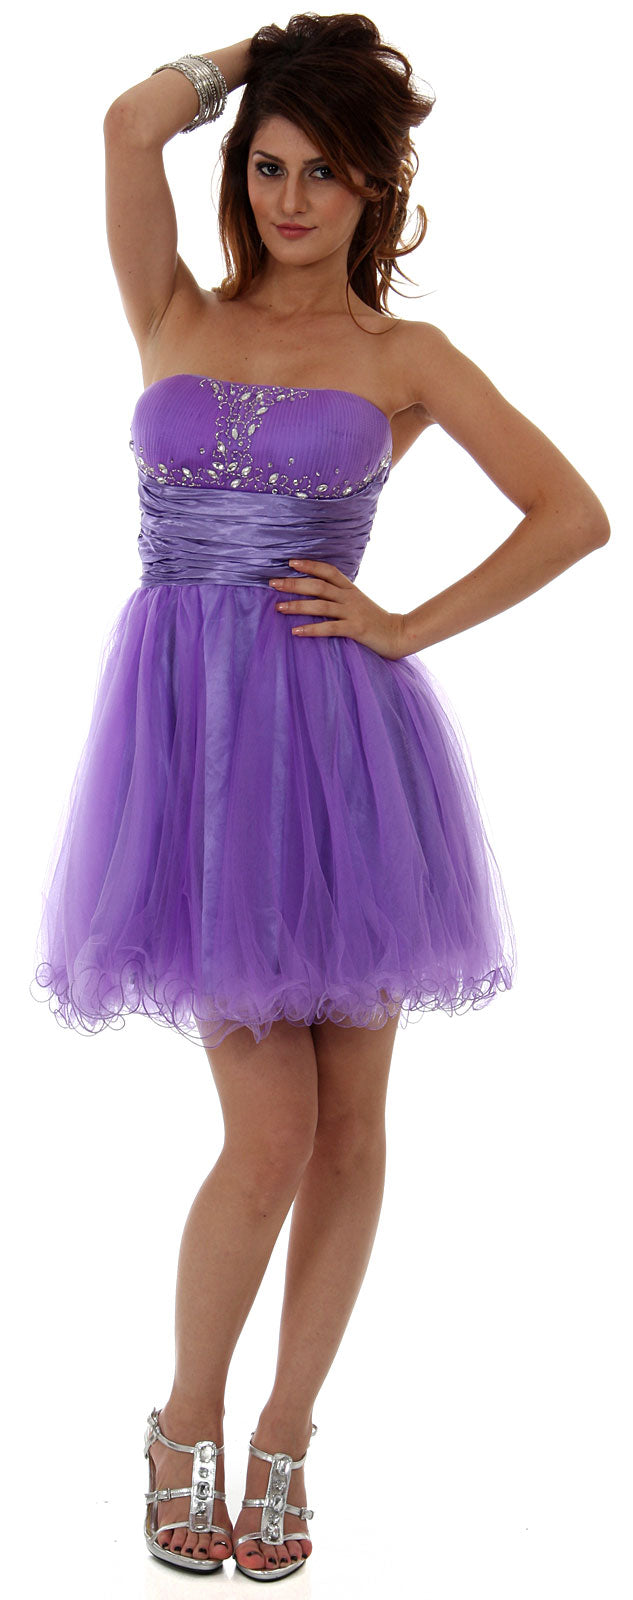 Image of Strapless Mesh Short Party Dress With Beaded Bust in Lavender